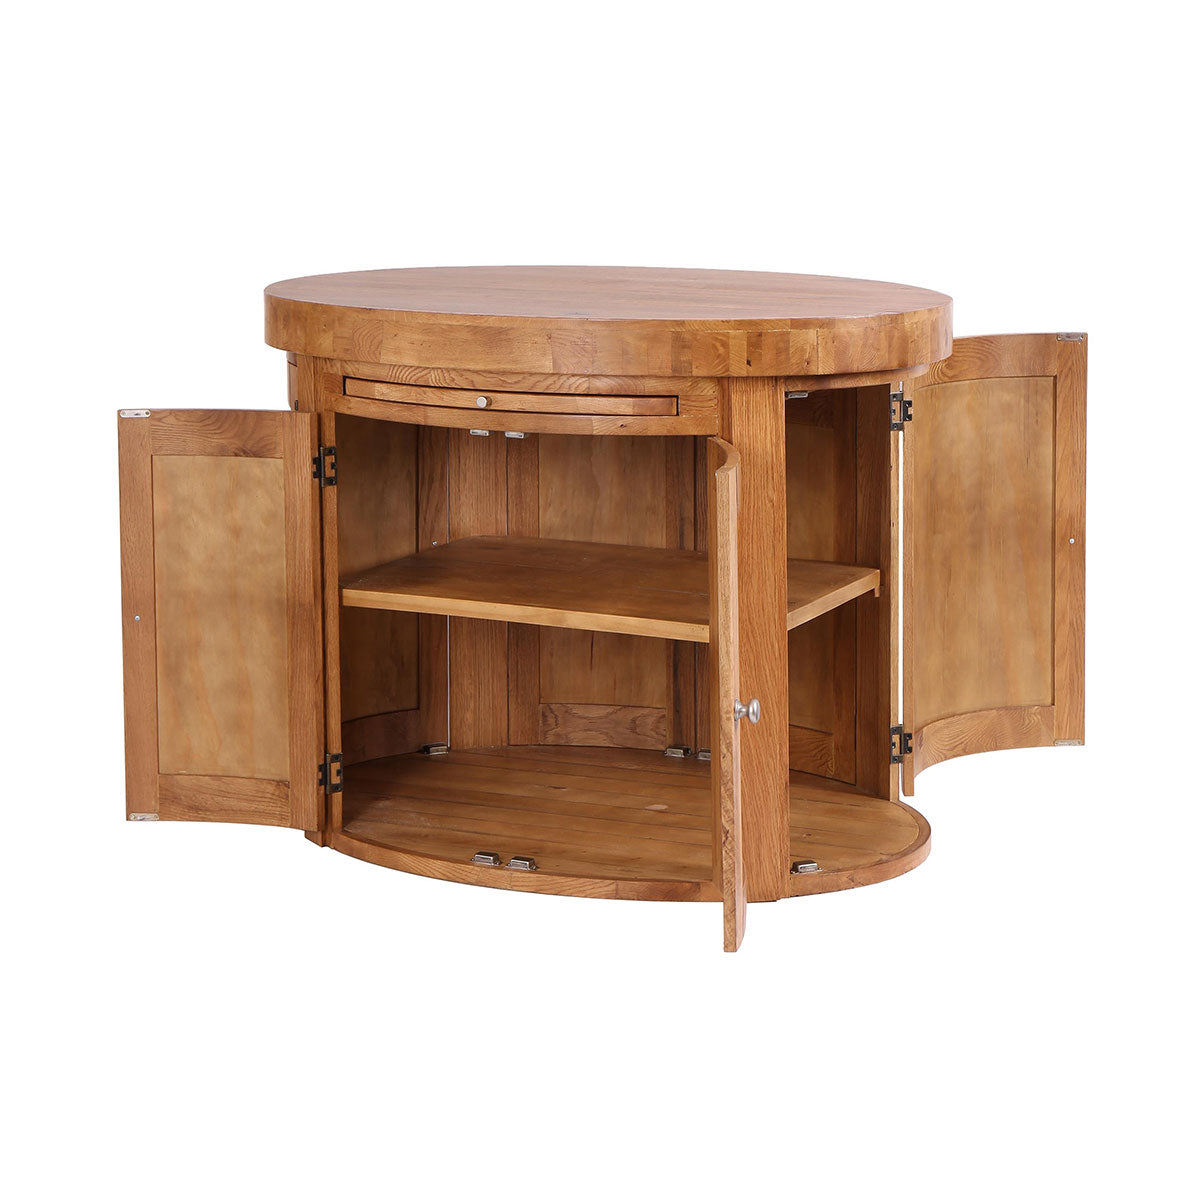 Oval Island with 6 Doors & Fixed Shelf